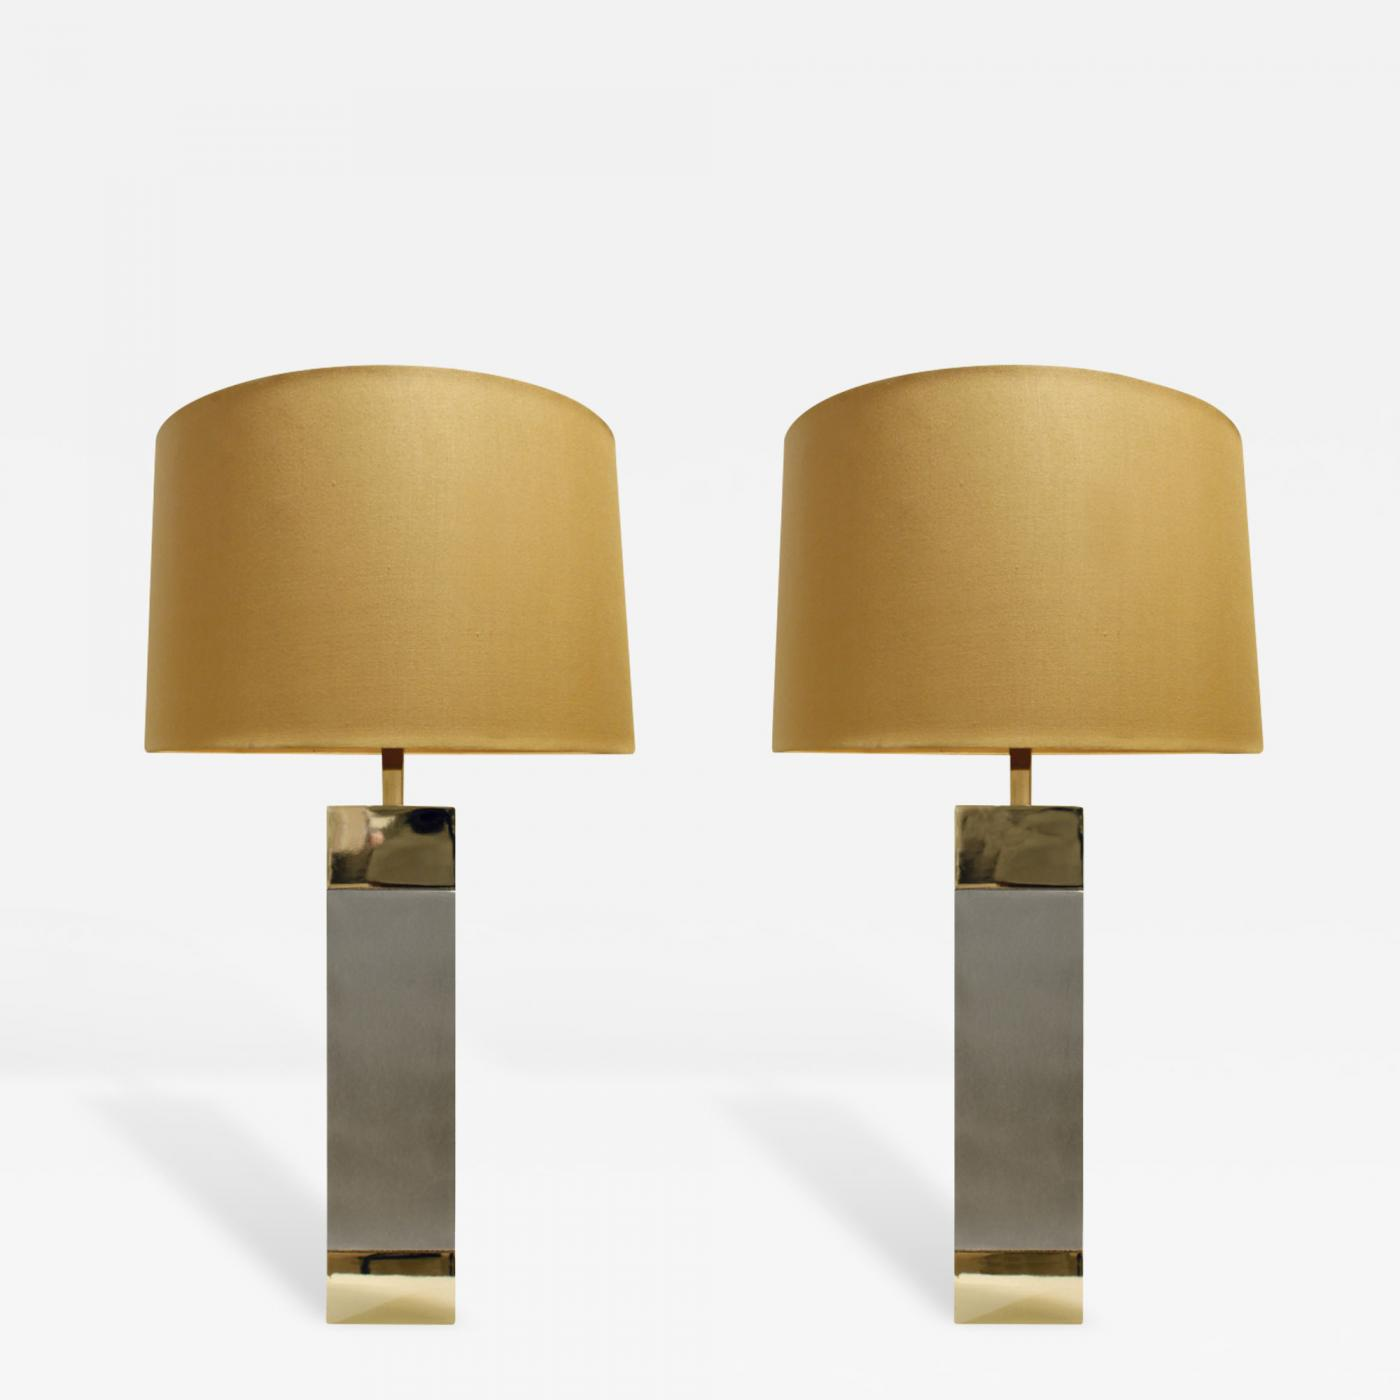 Pair Of Sleek Table Lamps In Brushed Chrome And Brass 1960s